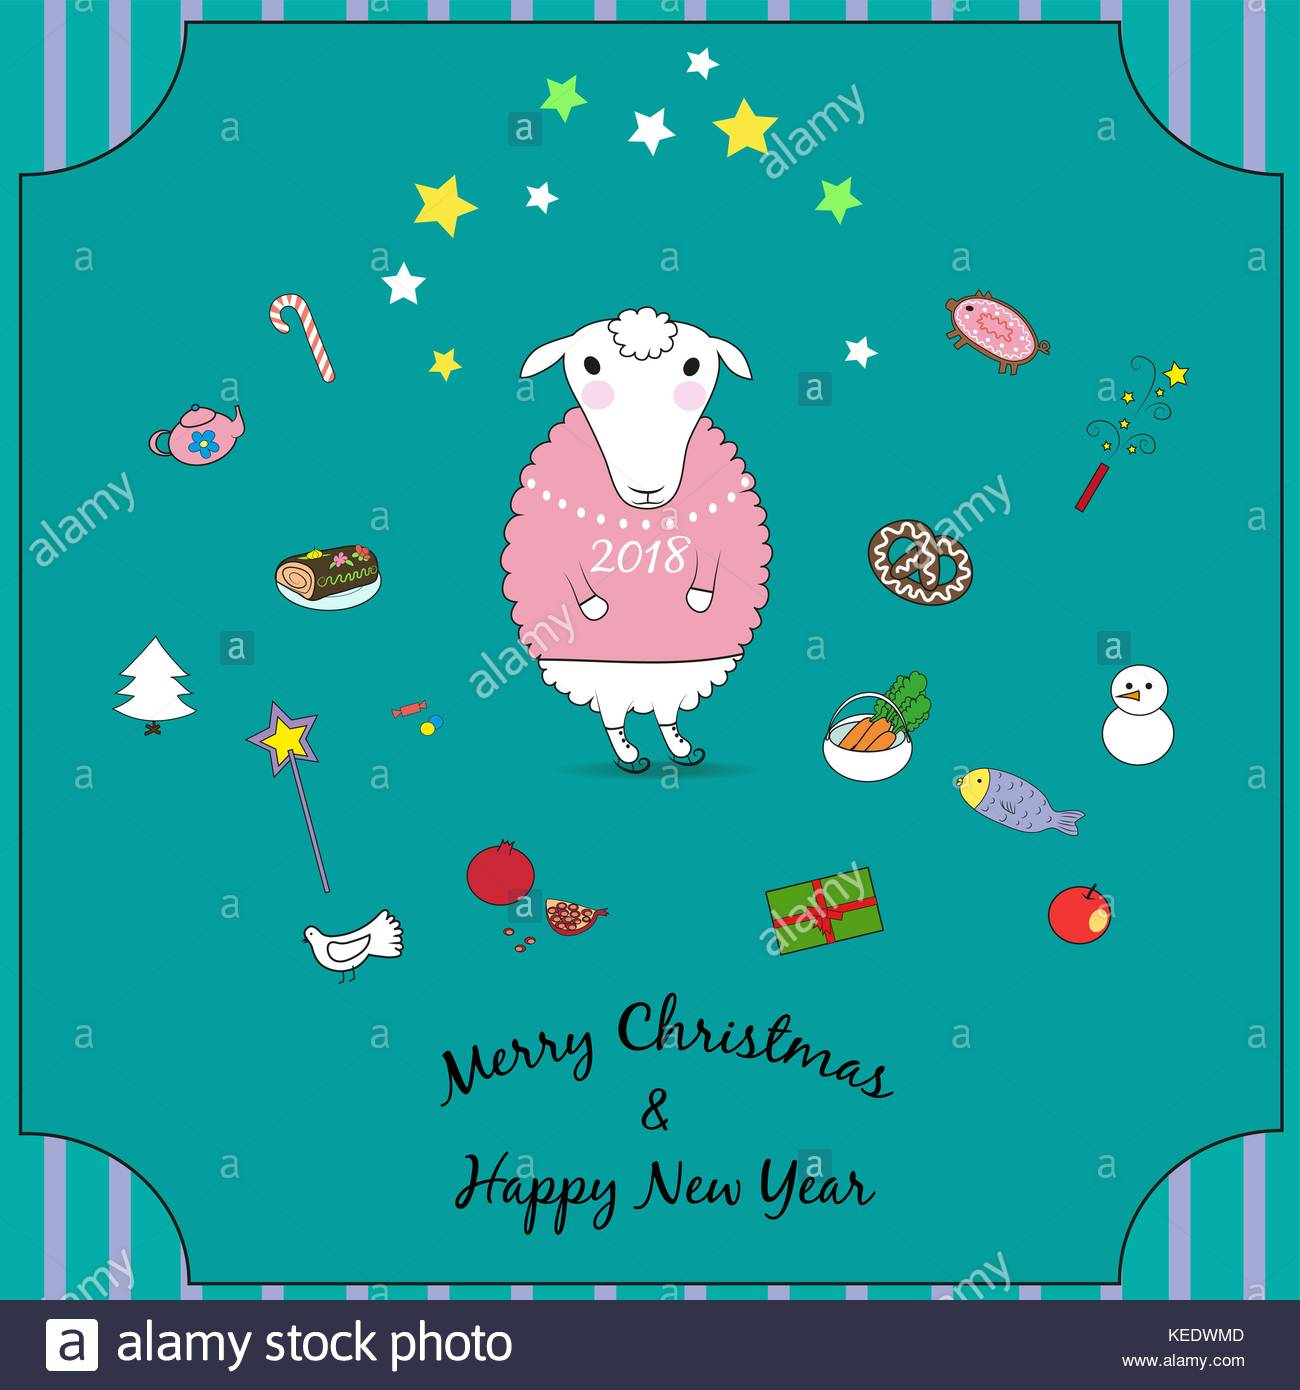 christmas sheep with sweets and gifts white animal with skates and pink sweater happy new year 2018 merry christmas green background and striped f